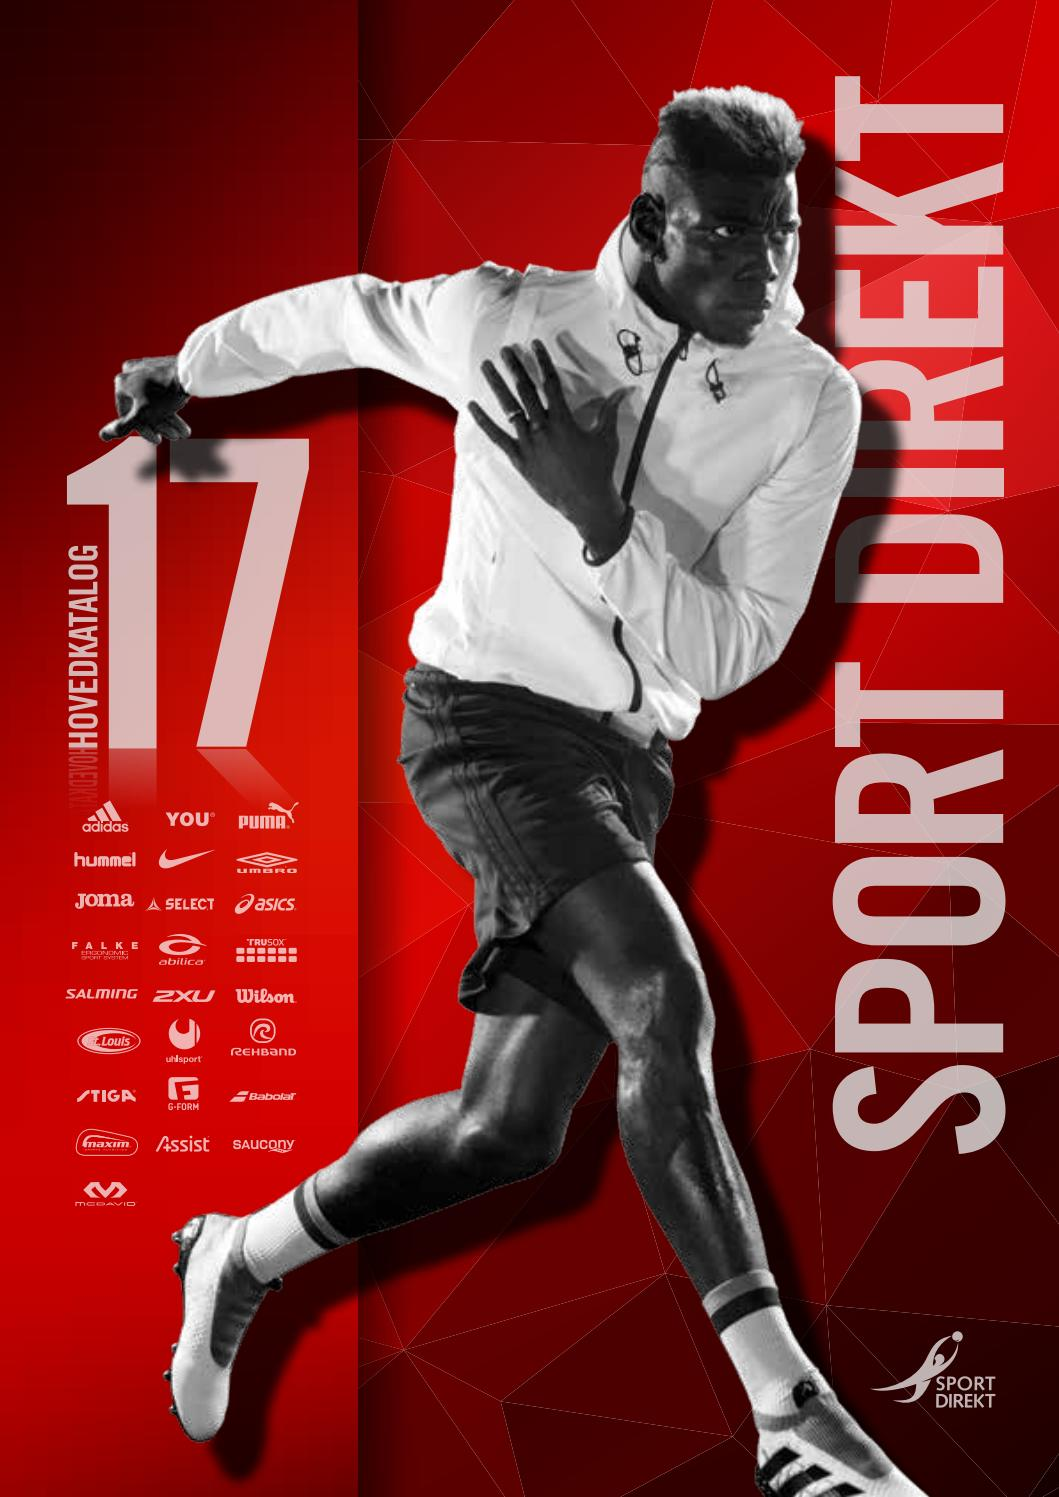 finest selection ac5f9 6a5a9 Sport Direkt hovedkatalog 2017 by Stadion AS - issuu